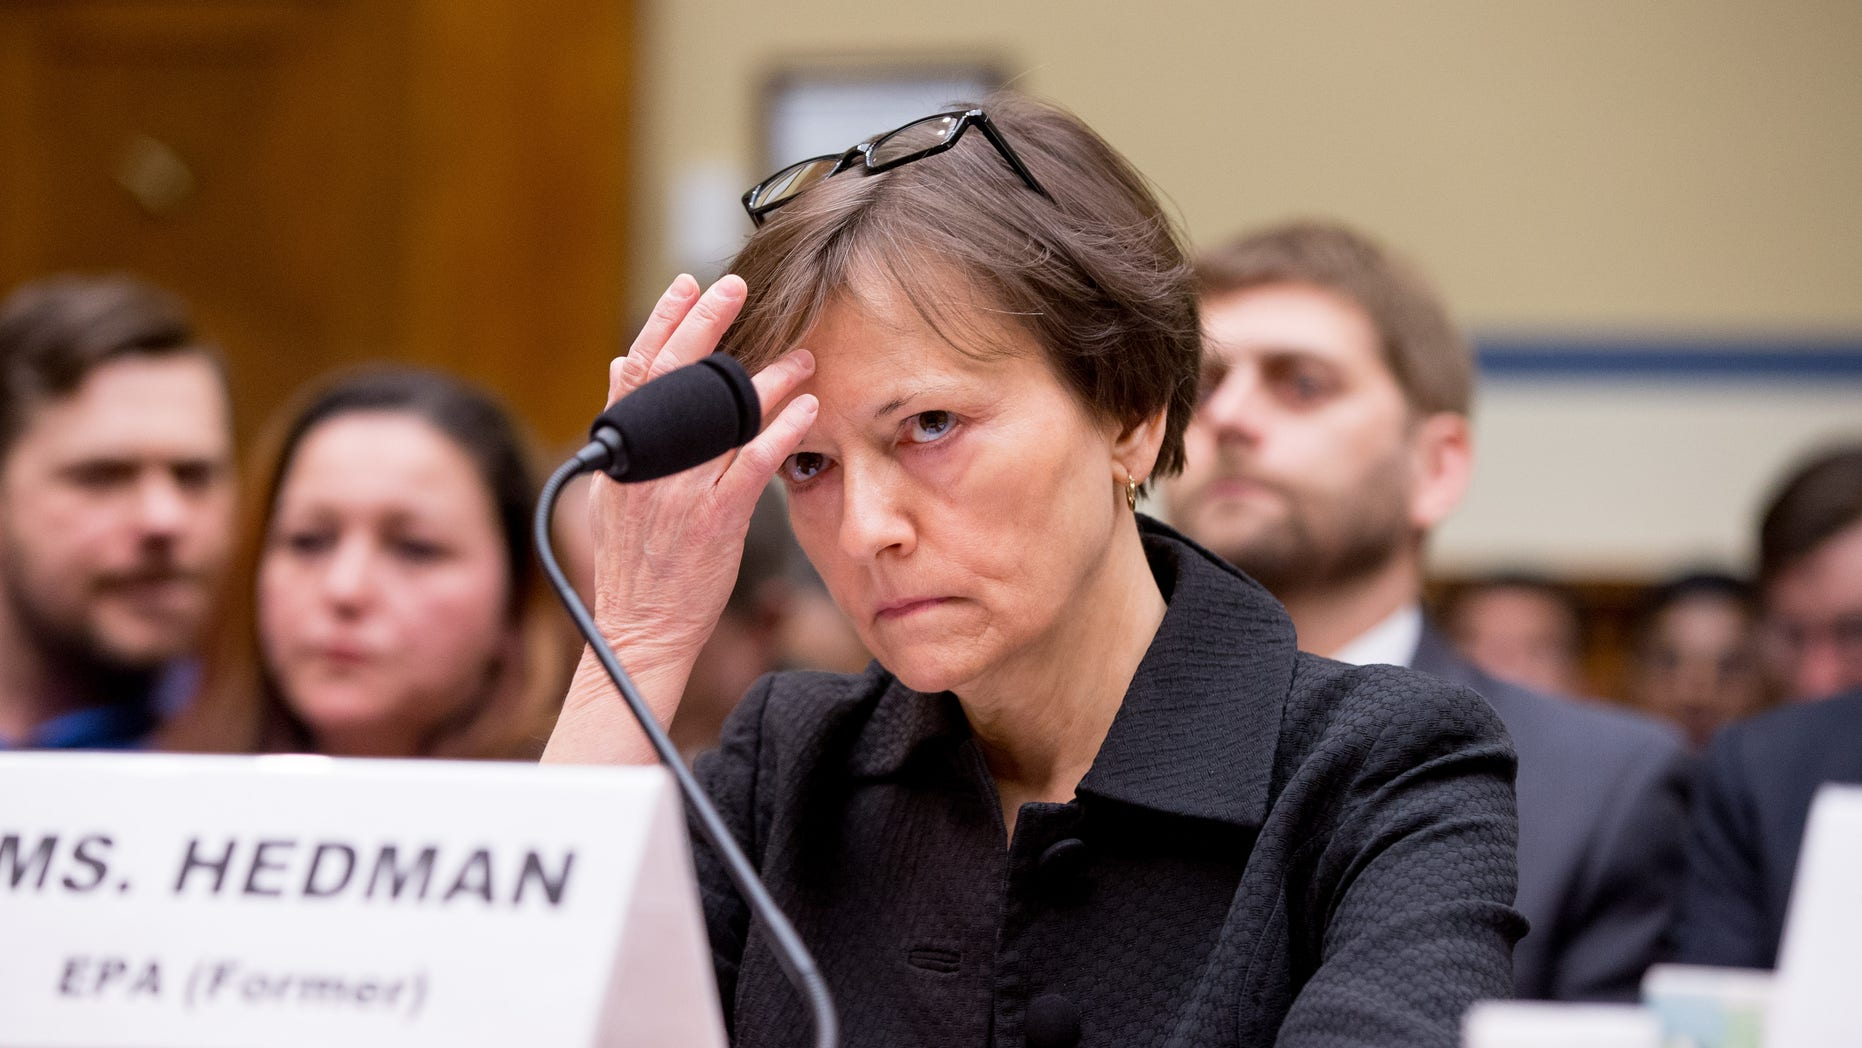 March 15, 2016: Former State EPA administrator Susan Hedman testifies before the House Oversight and Government Reform Committee, in Washington.